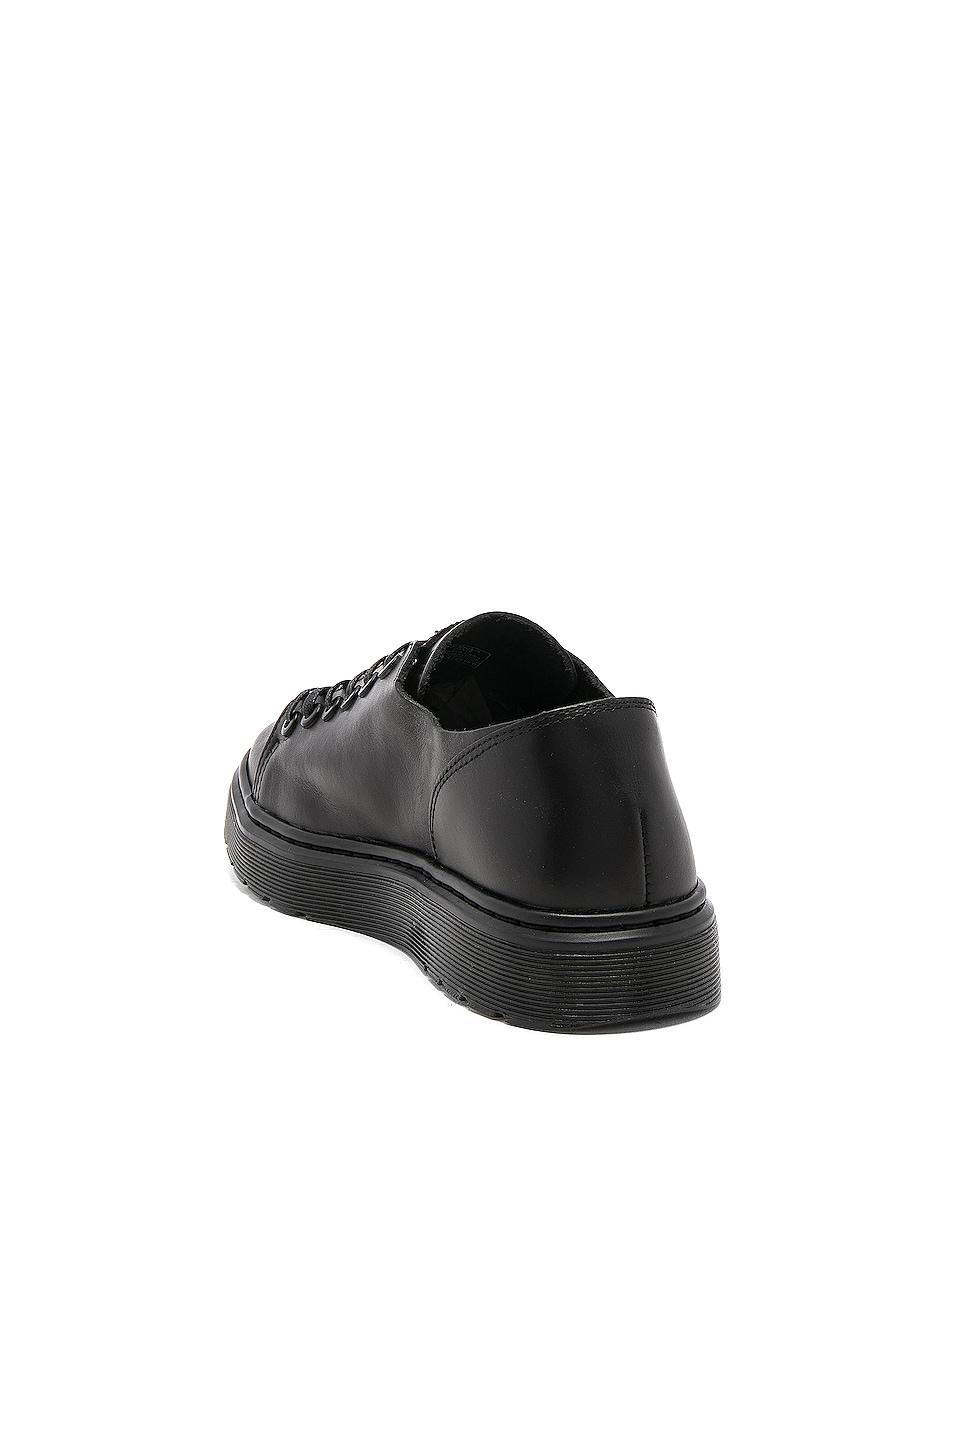 Image 3 of Dr. Martens Dante 6 Eye Leather Shoes in Black